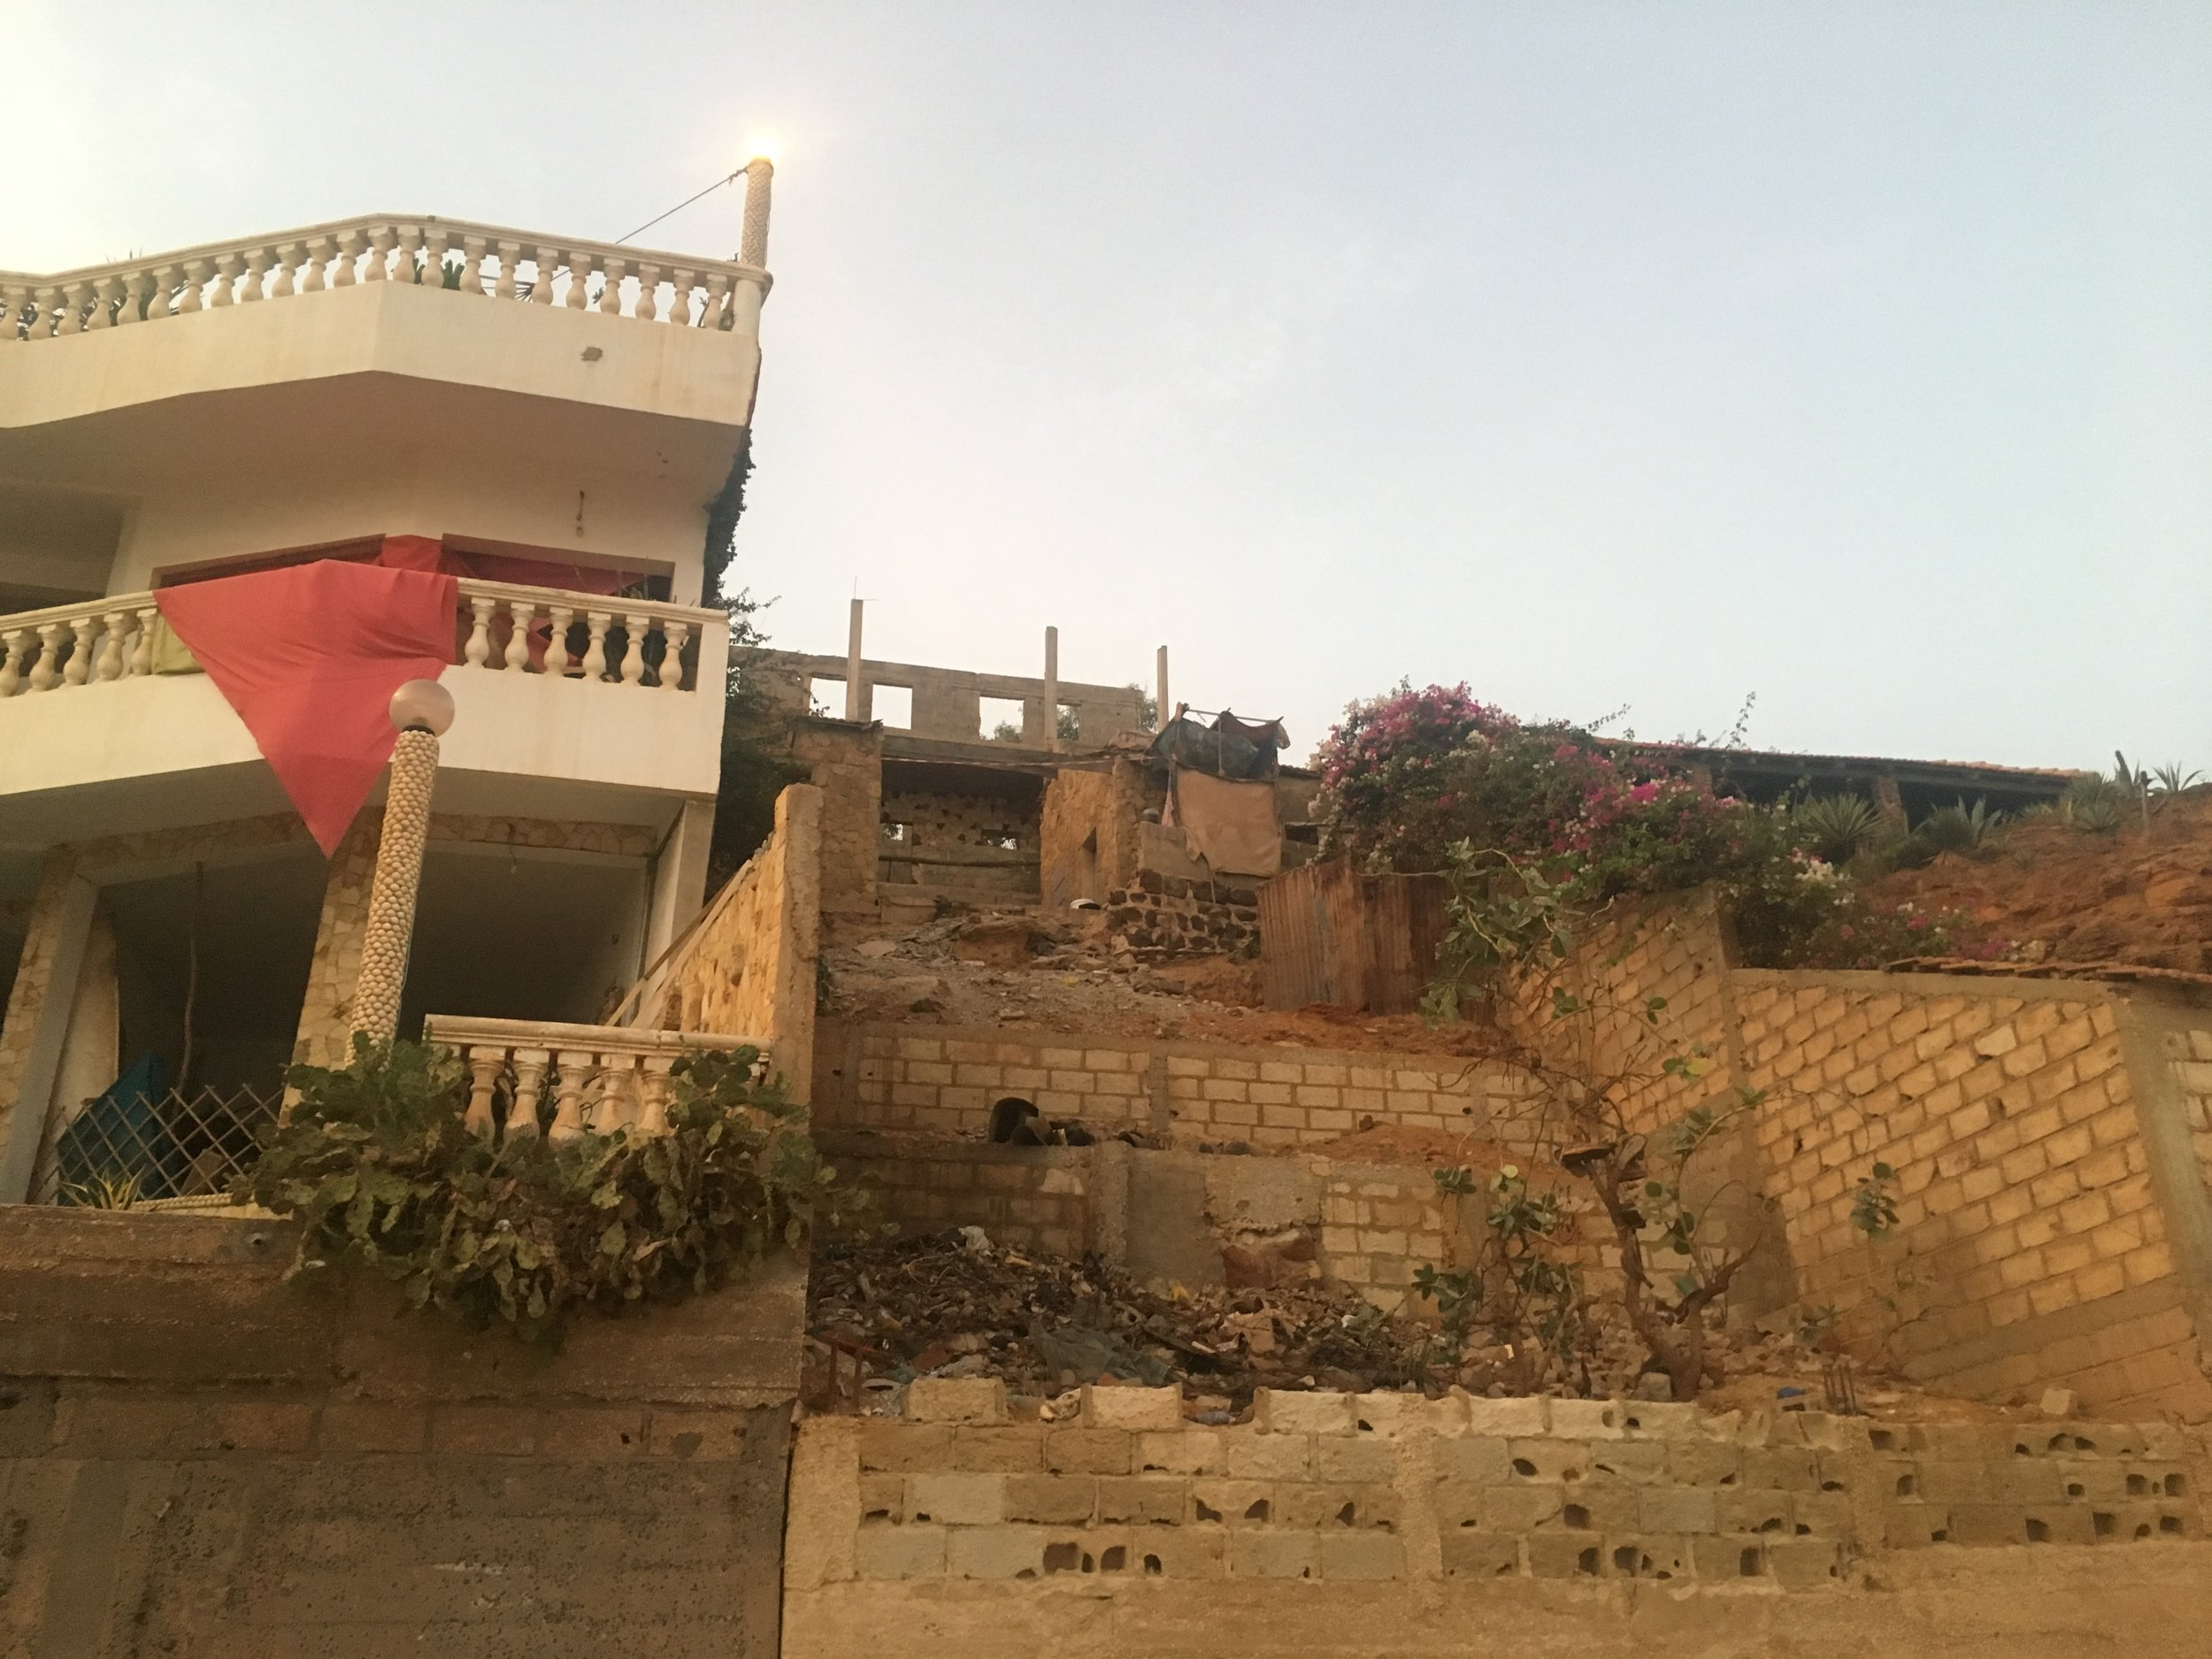 An unfinished house in Toubab Dialaw.